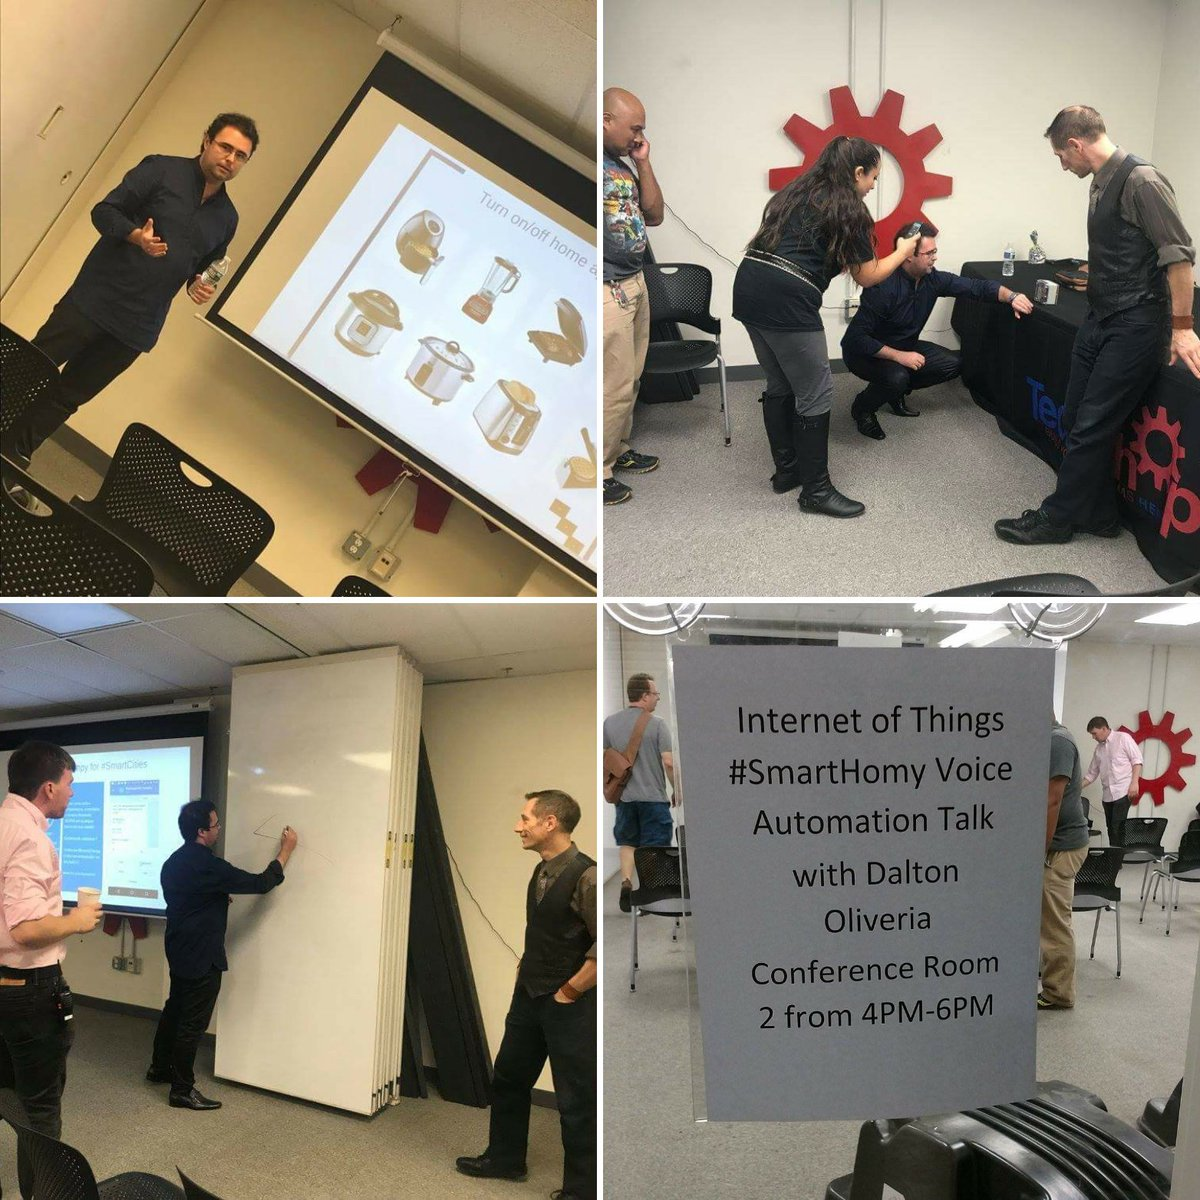 #IoT Speaking Session about my #smartyWiot for #SmartHome #SmartCities #SmartBuilding projects @ TechShop - Washington, DC<br>http://pic.twitter.com/Ko3w4xjEsM